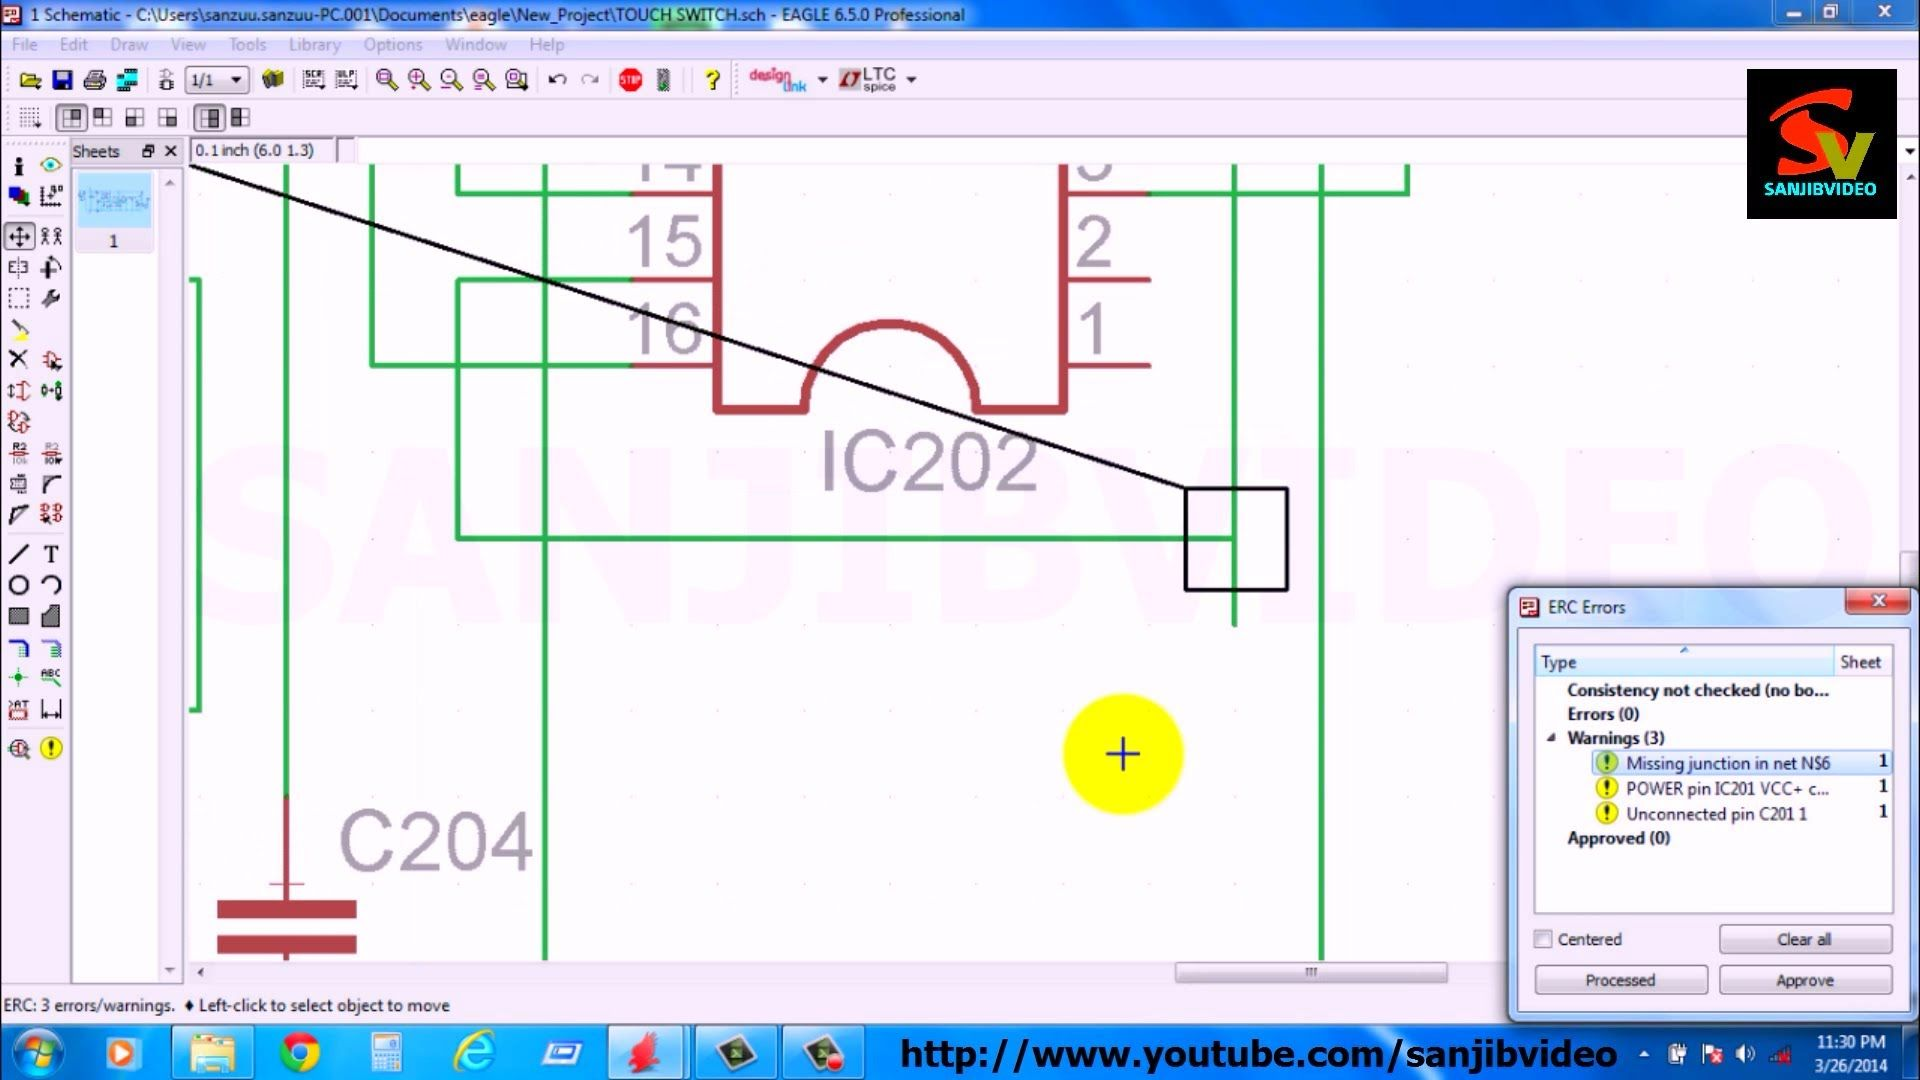 This Is The Schematic Circuit Diagram It Is Drawn In Eagle Cad Pcb